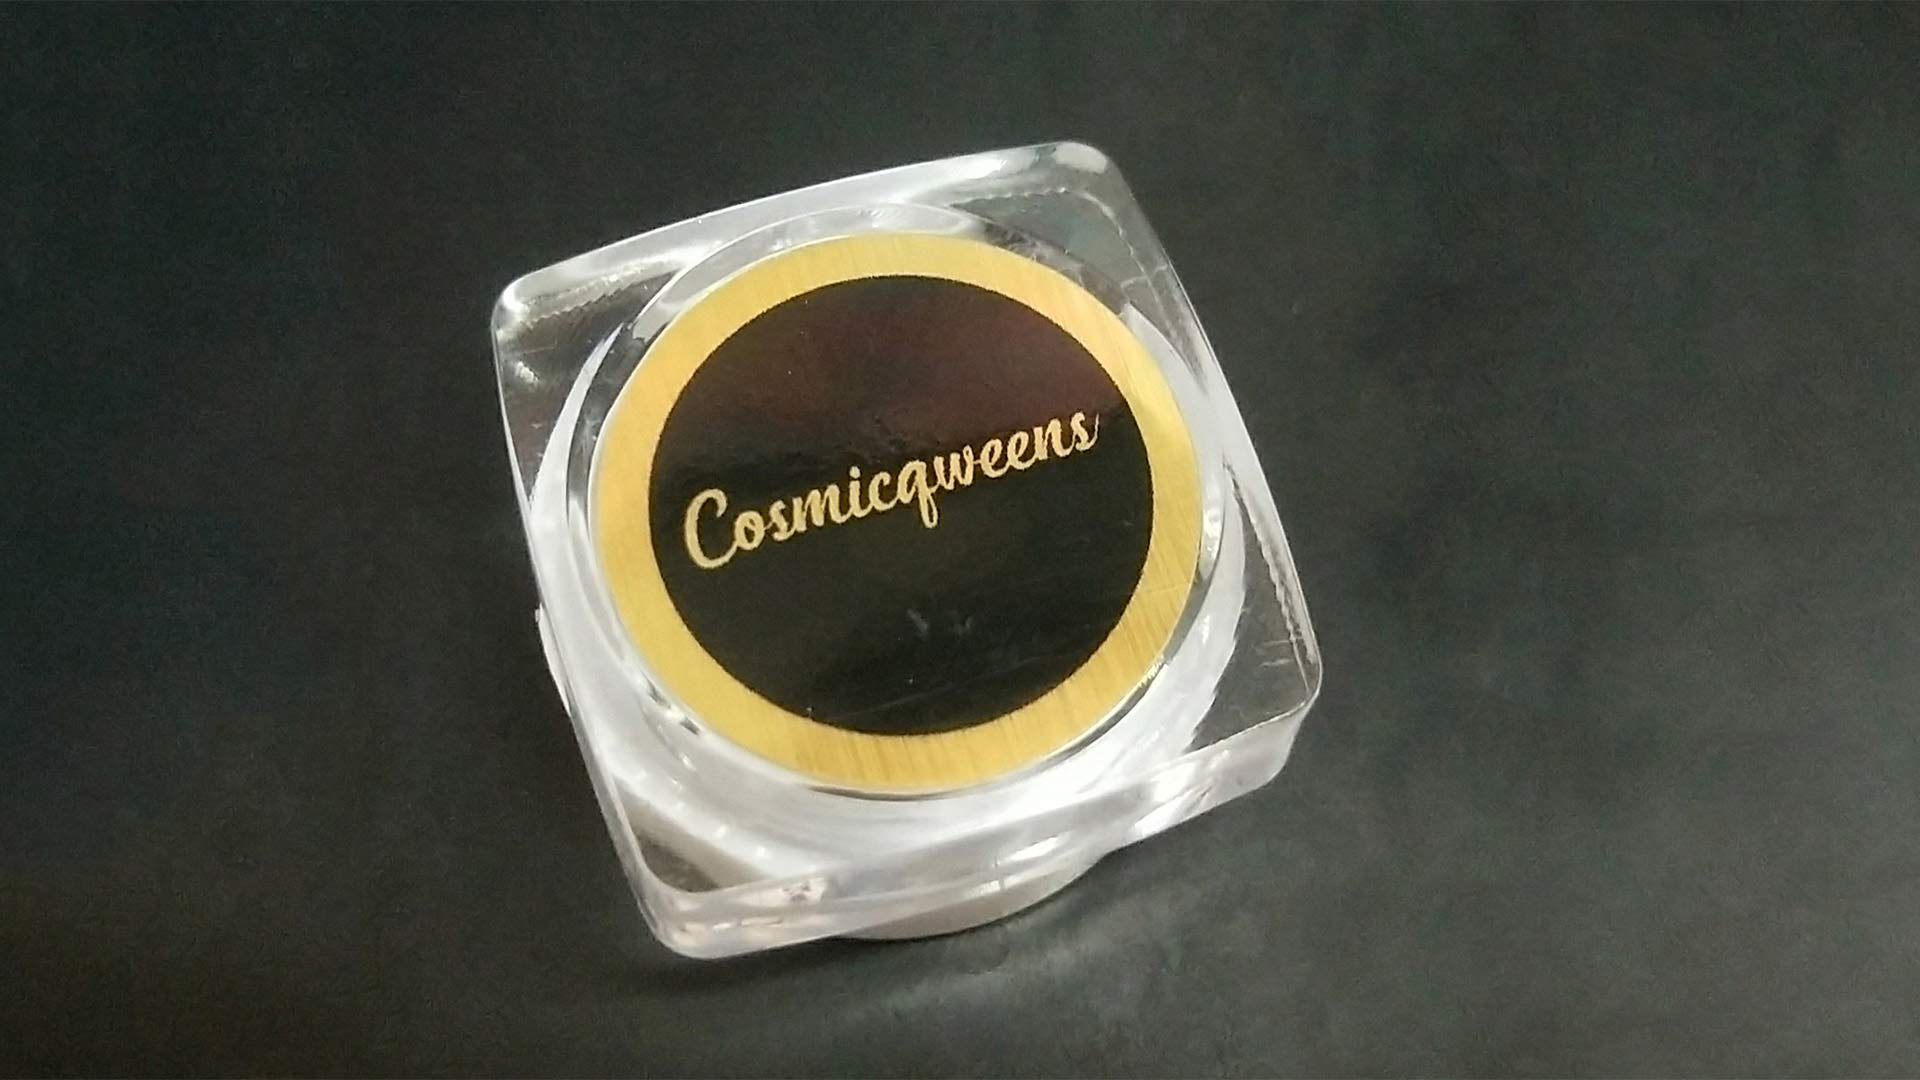 gold-foil-pvc-on-cosmetics